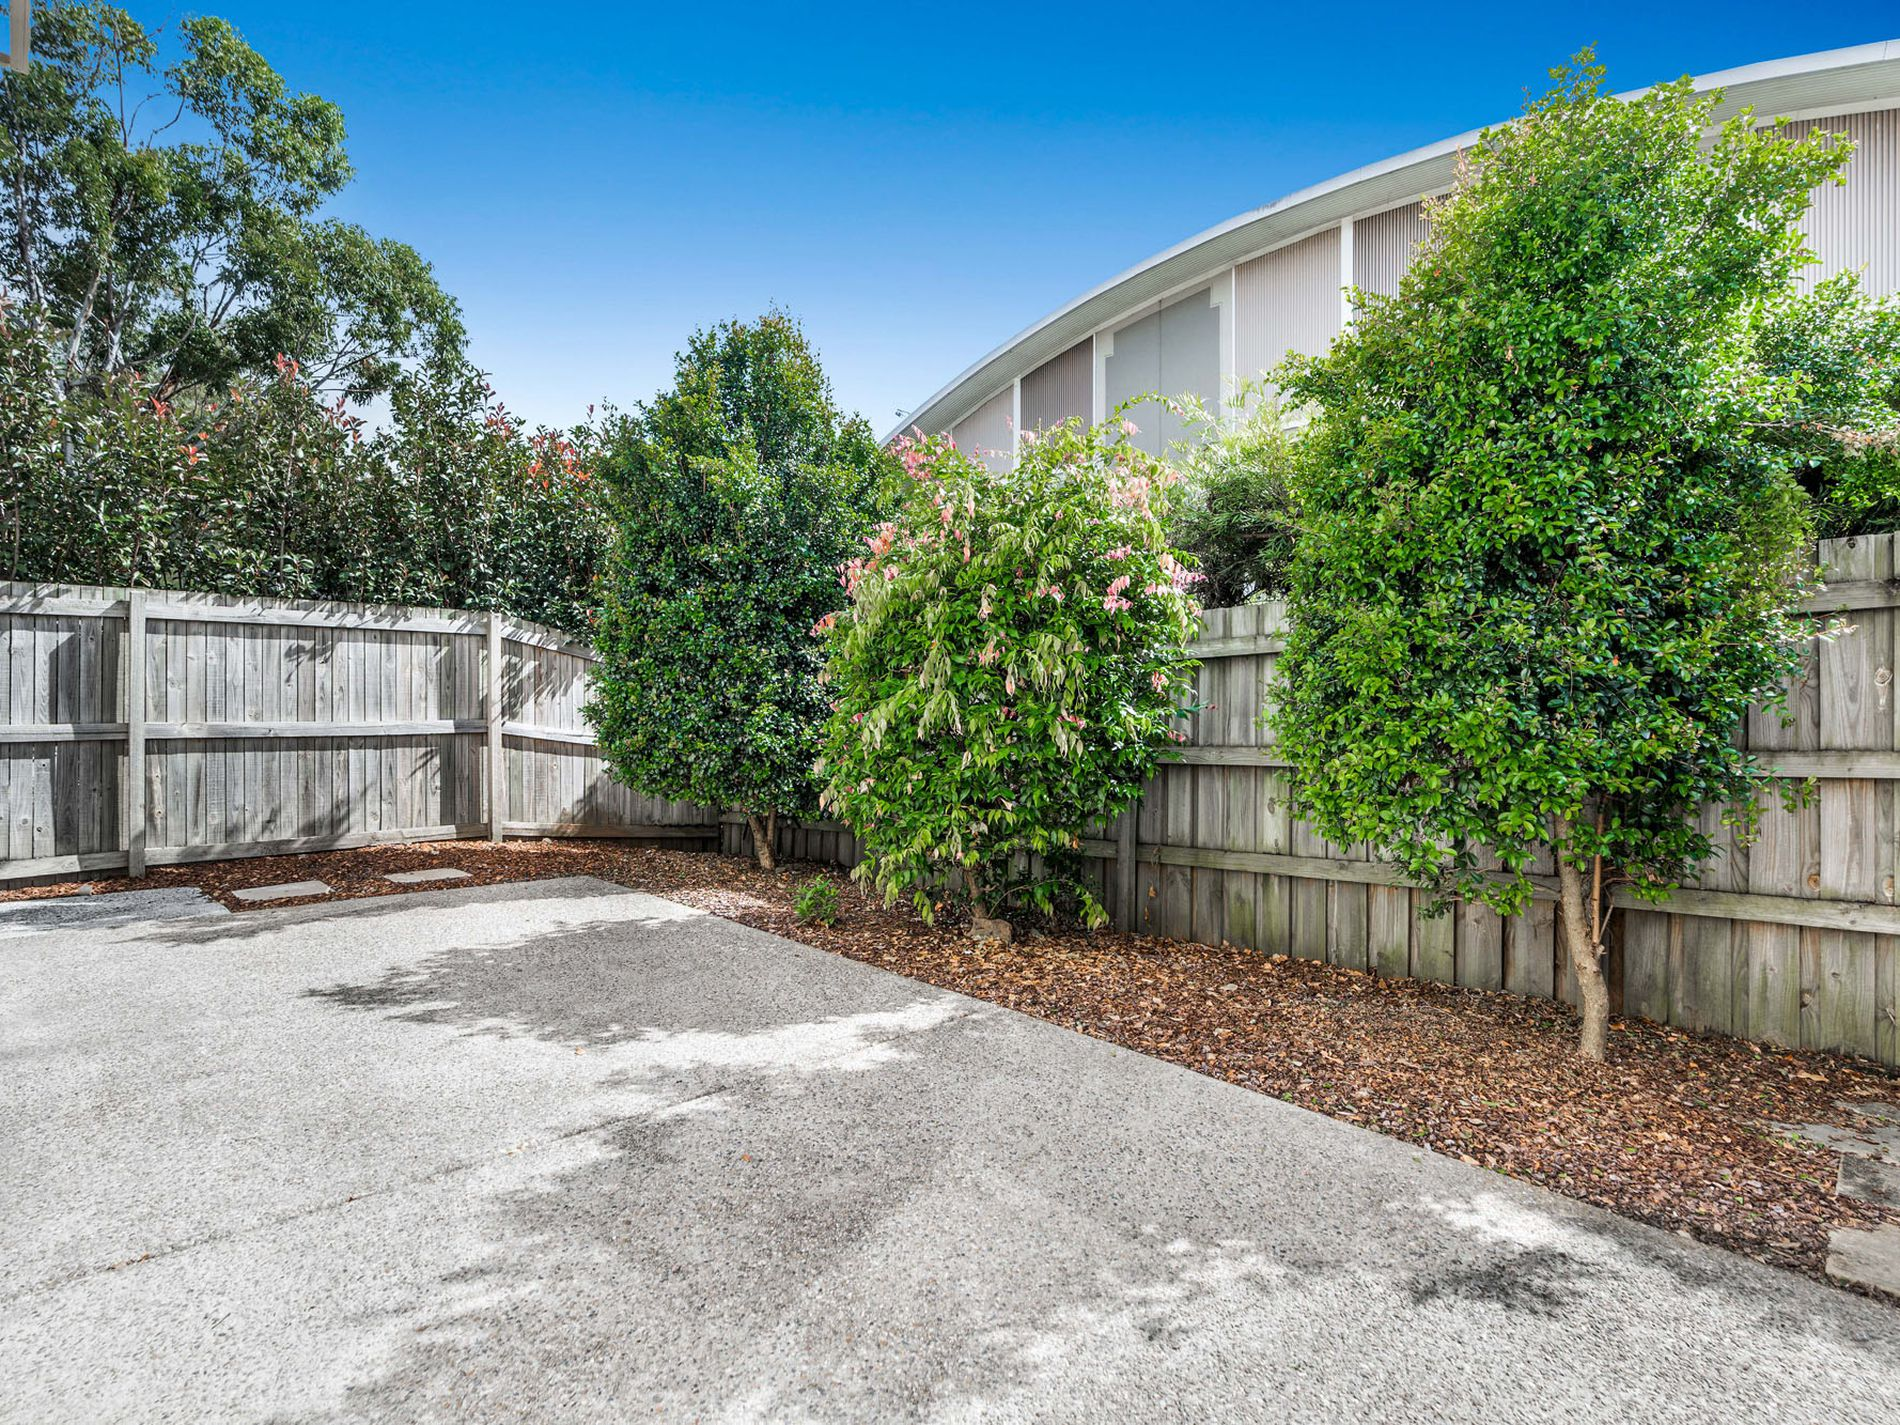 63 / 40 Hargreaves Road, Manly West